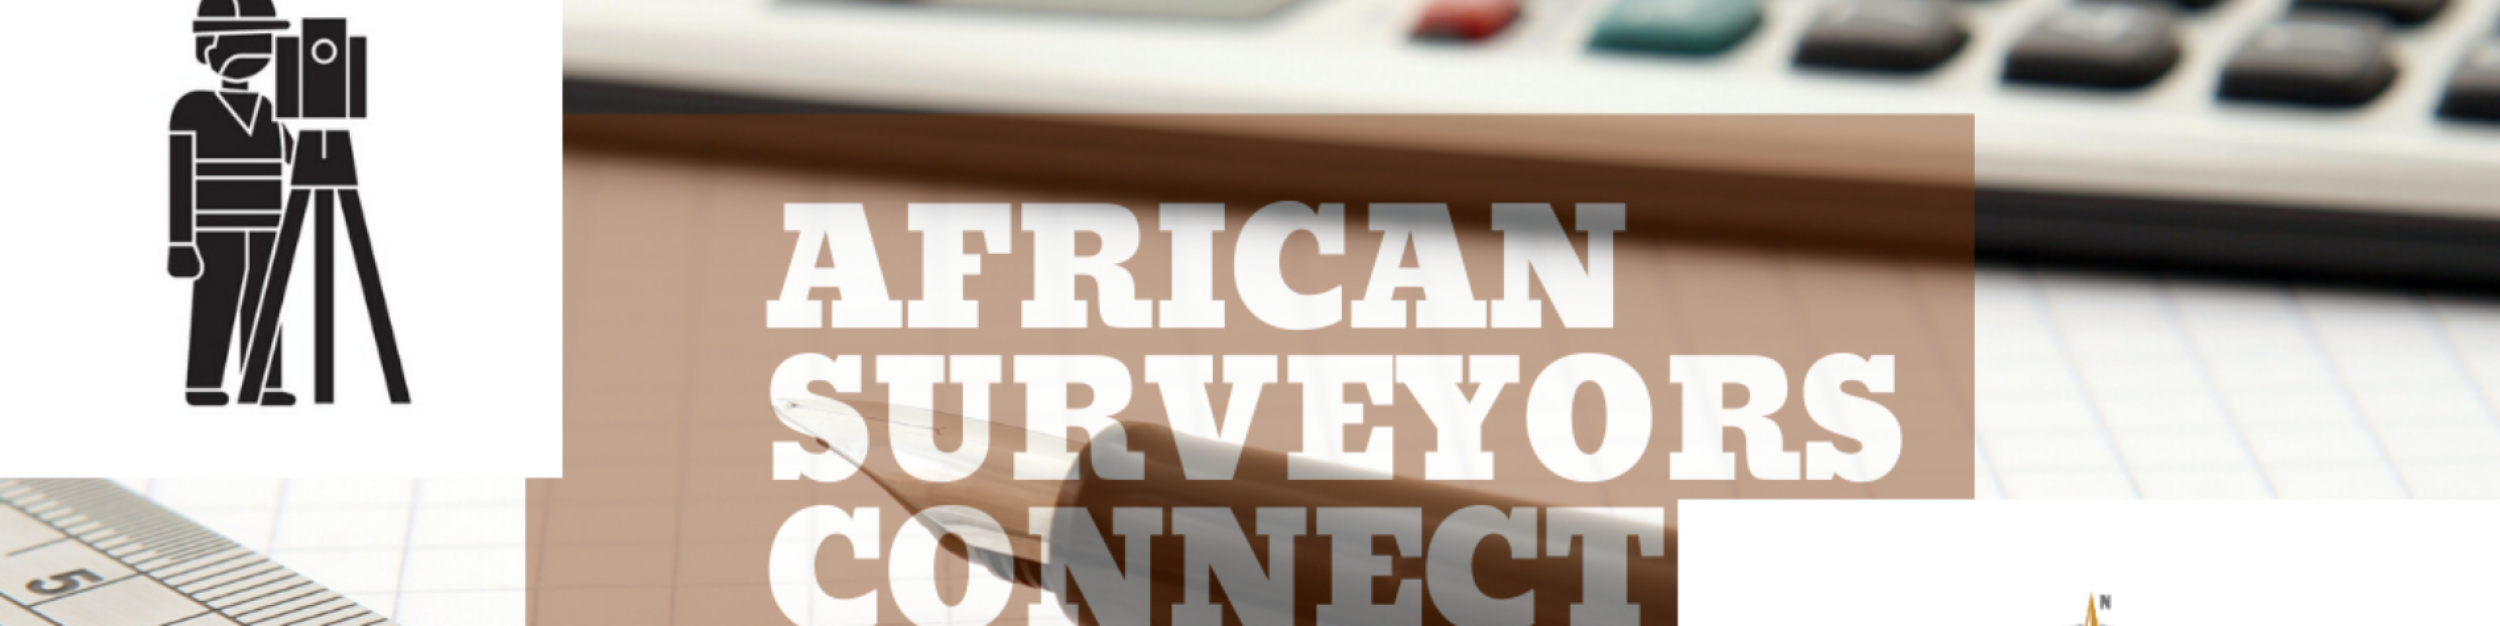 African Surveyors Connect